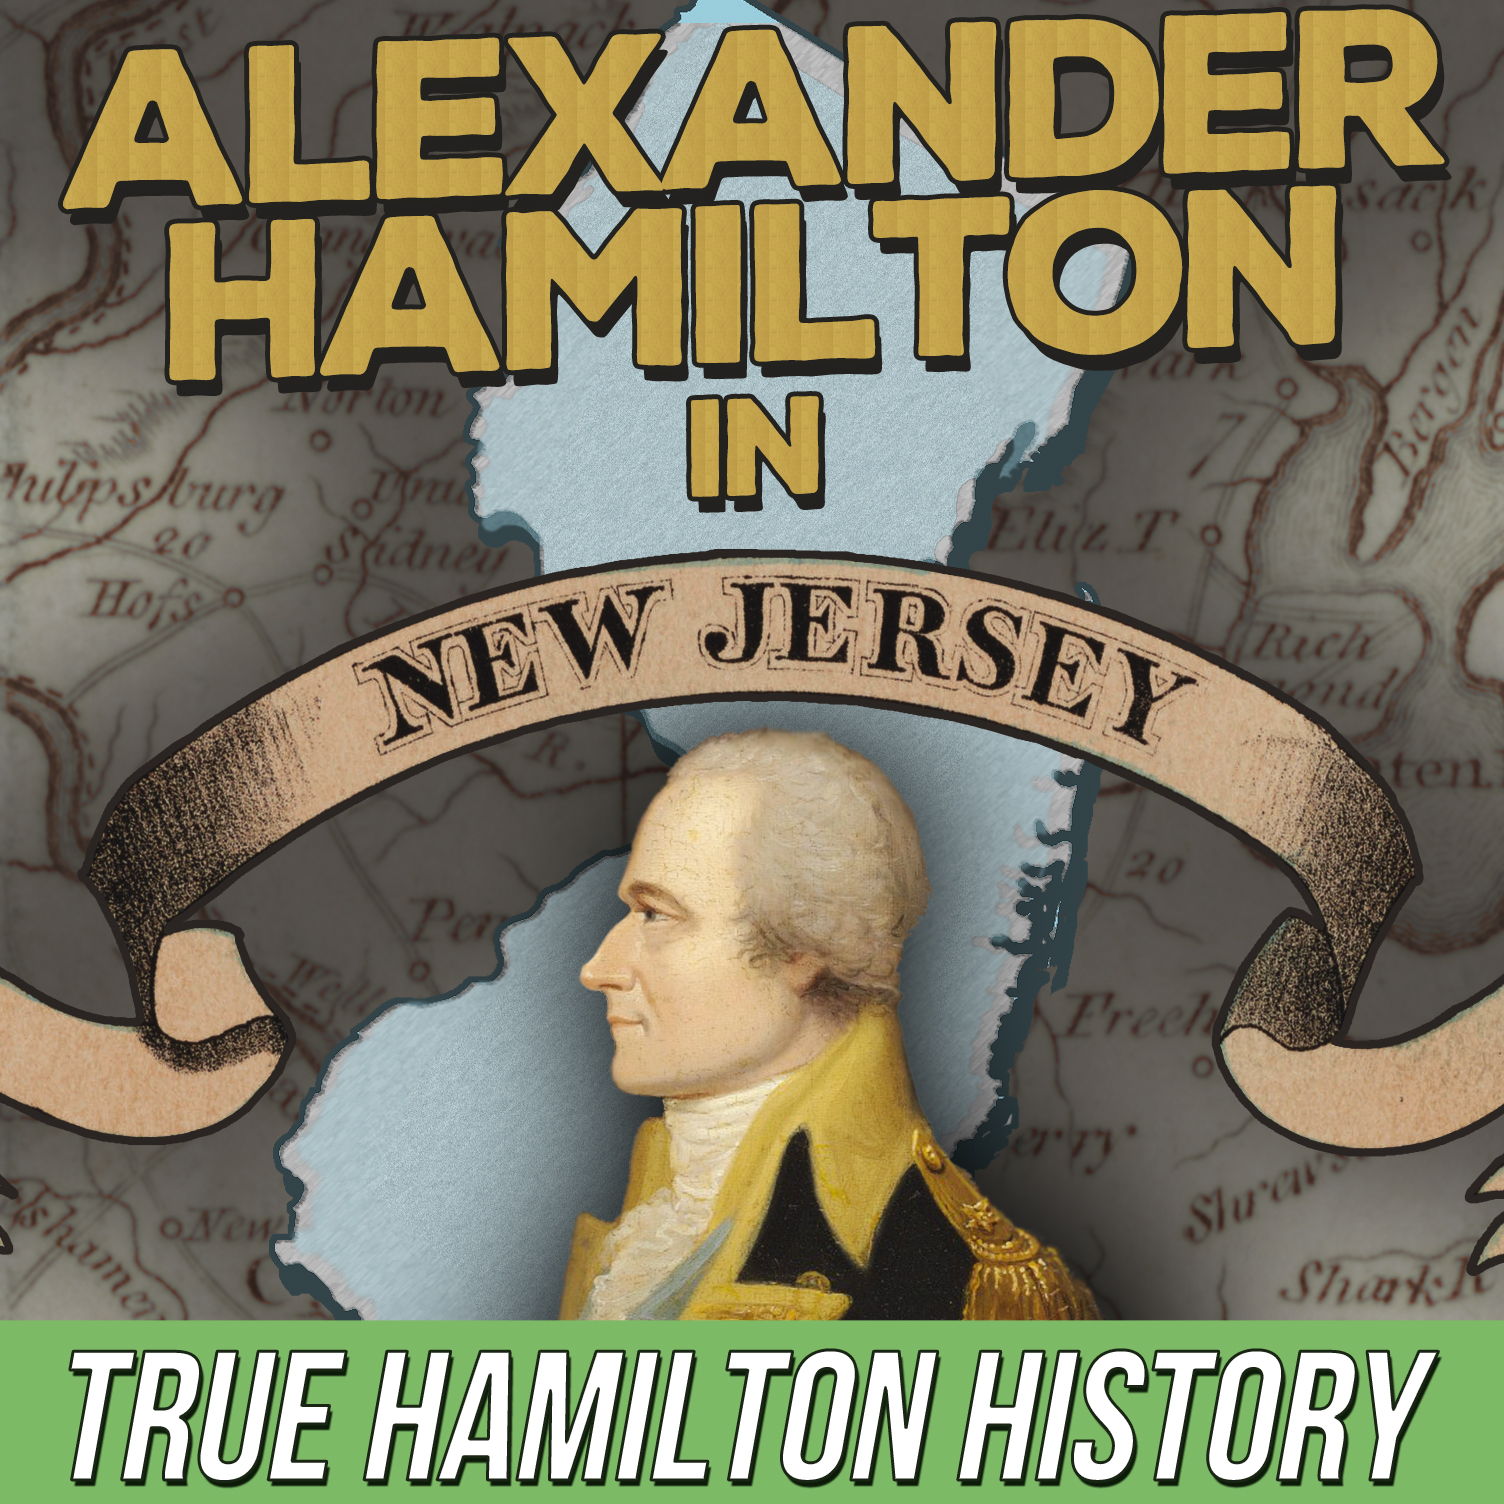 Tons of crucial Alexander Hamilton history played out in New Jersey. Broadway won't tell you—but I will!